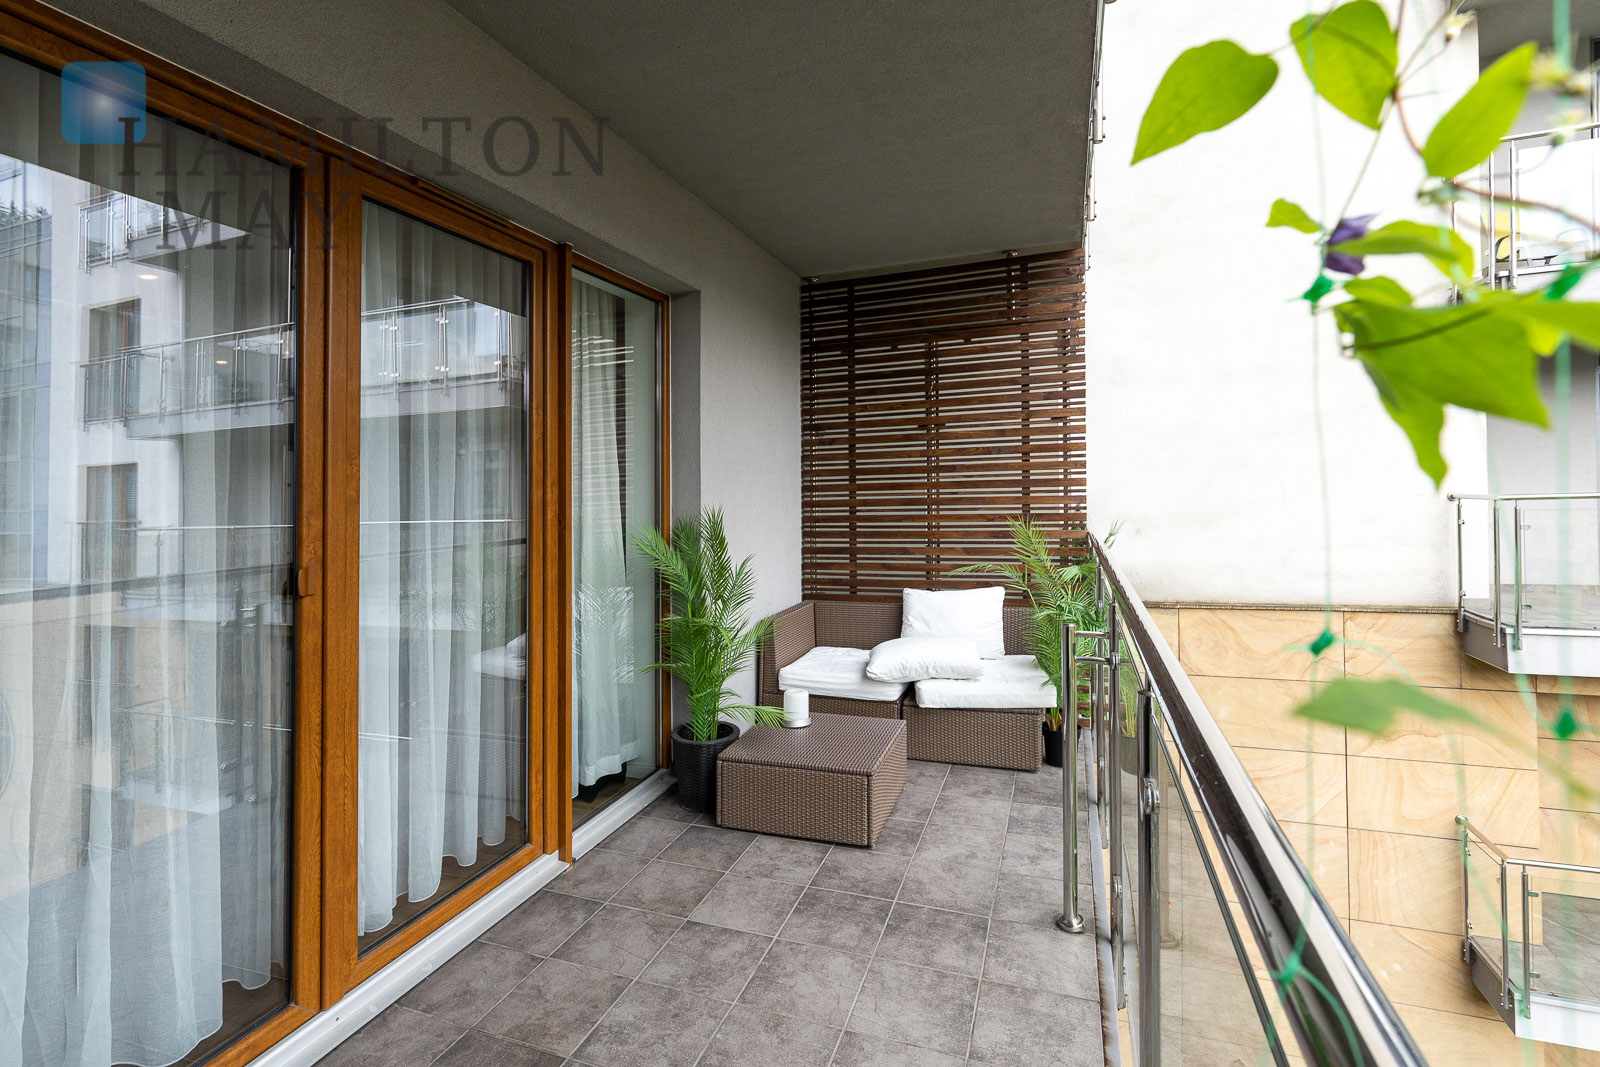 A spacious 79m2 apartment with 2 bedrooms in the Vistula Terraces development Krakow for sale